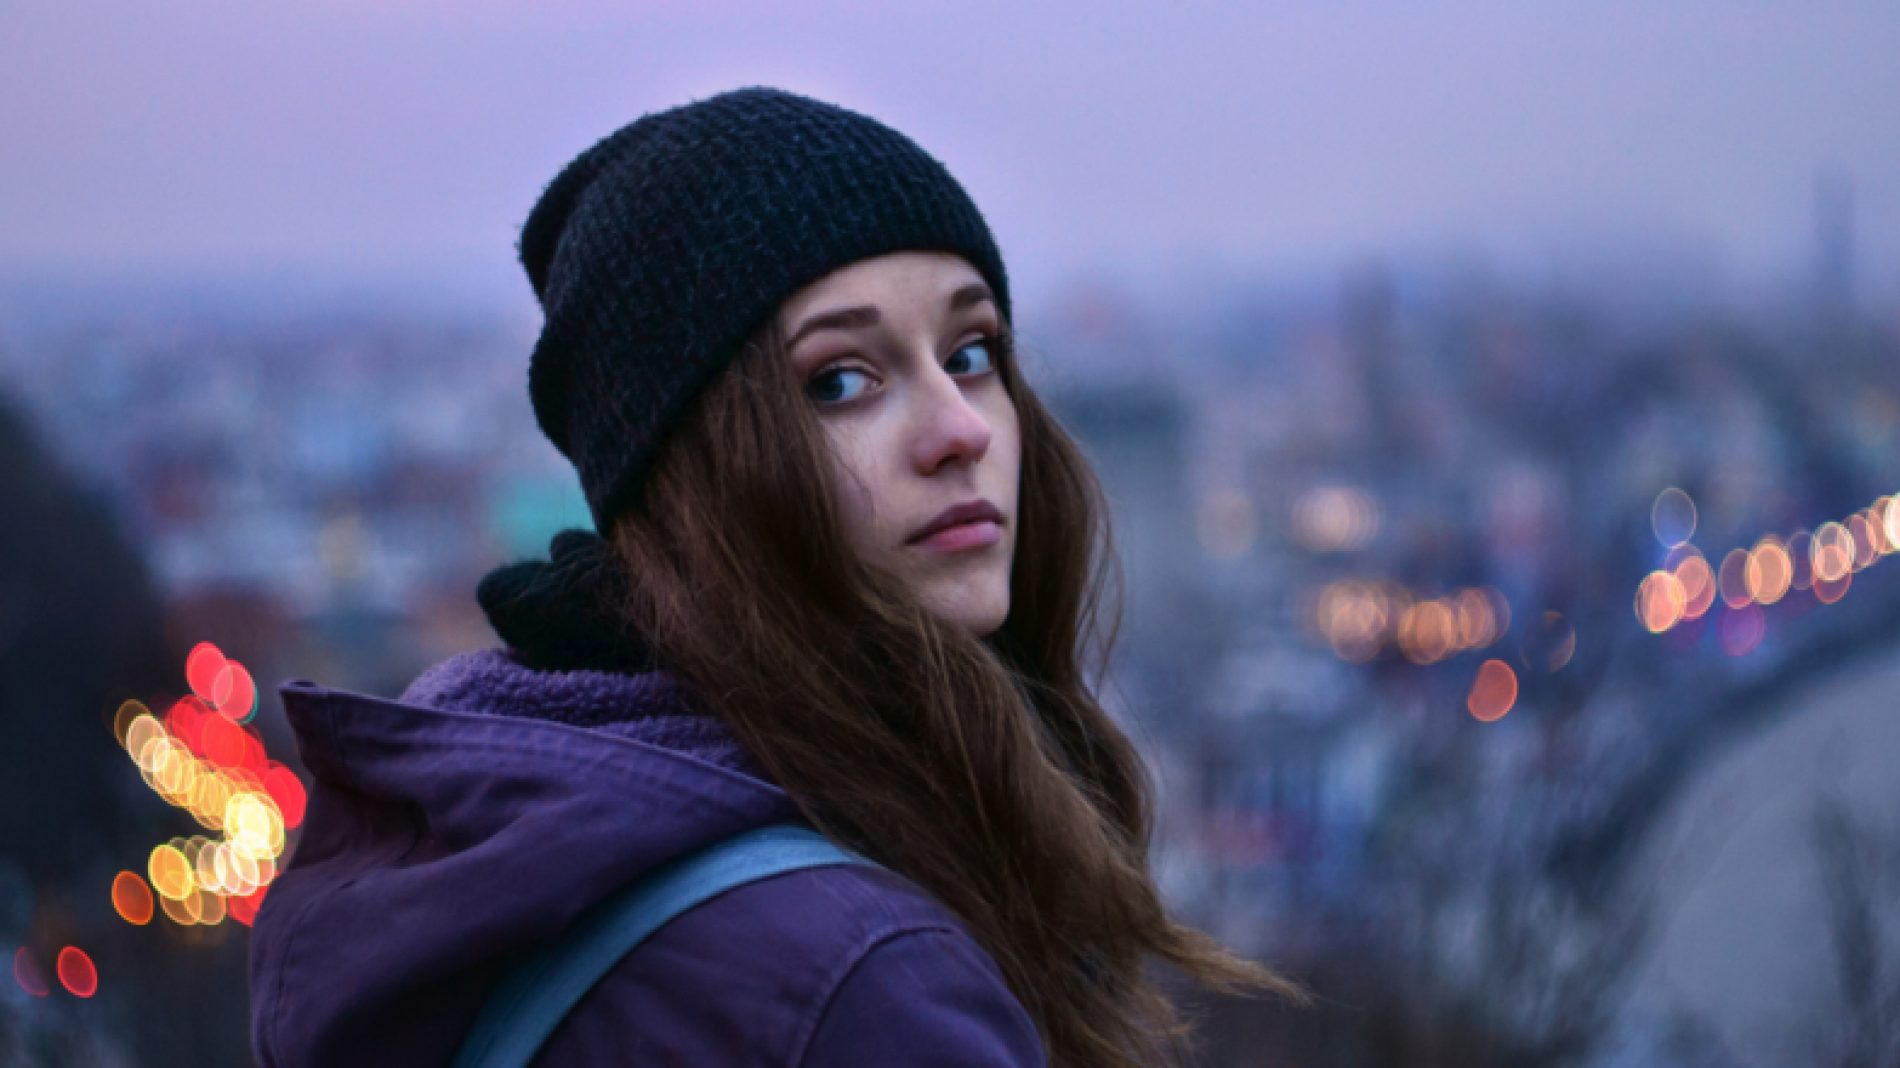 Young-girl-looking-over-her-shoulder-R0W2b7